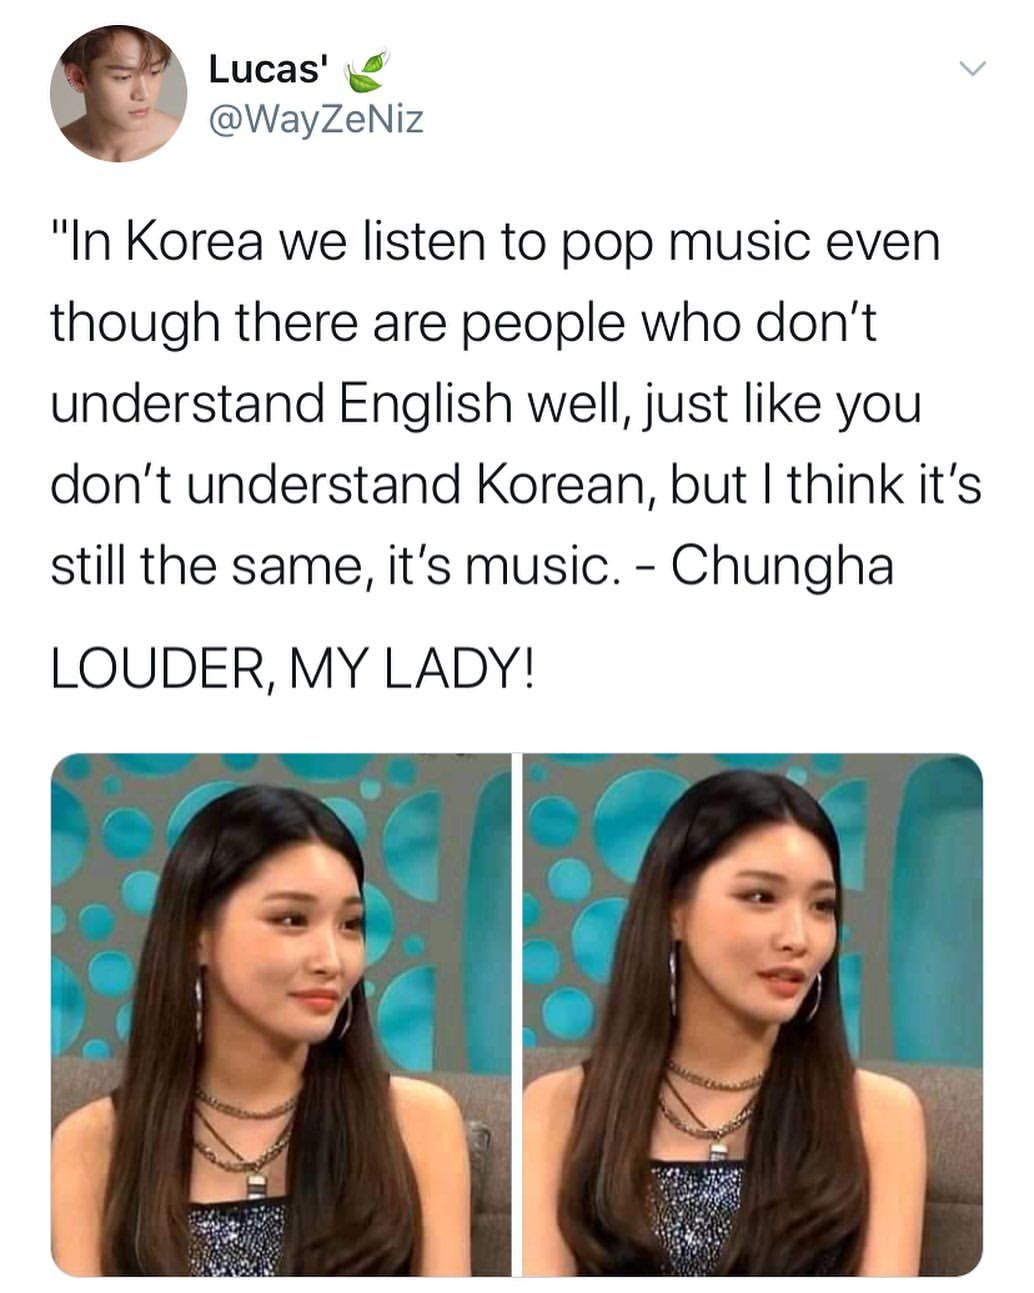 Kpop Memes Vids On Instagram Period Chungha Also Why Do I Keep Looking For P1 Tickets For Skz Other Shows As If I Kpop Memes Funny Kpop Memes Kpop Quotes